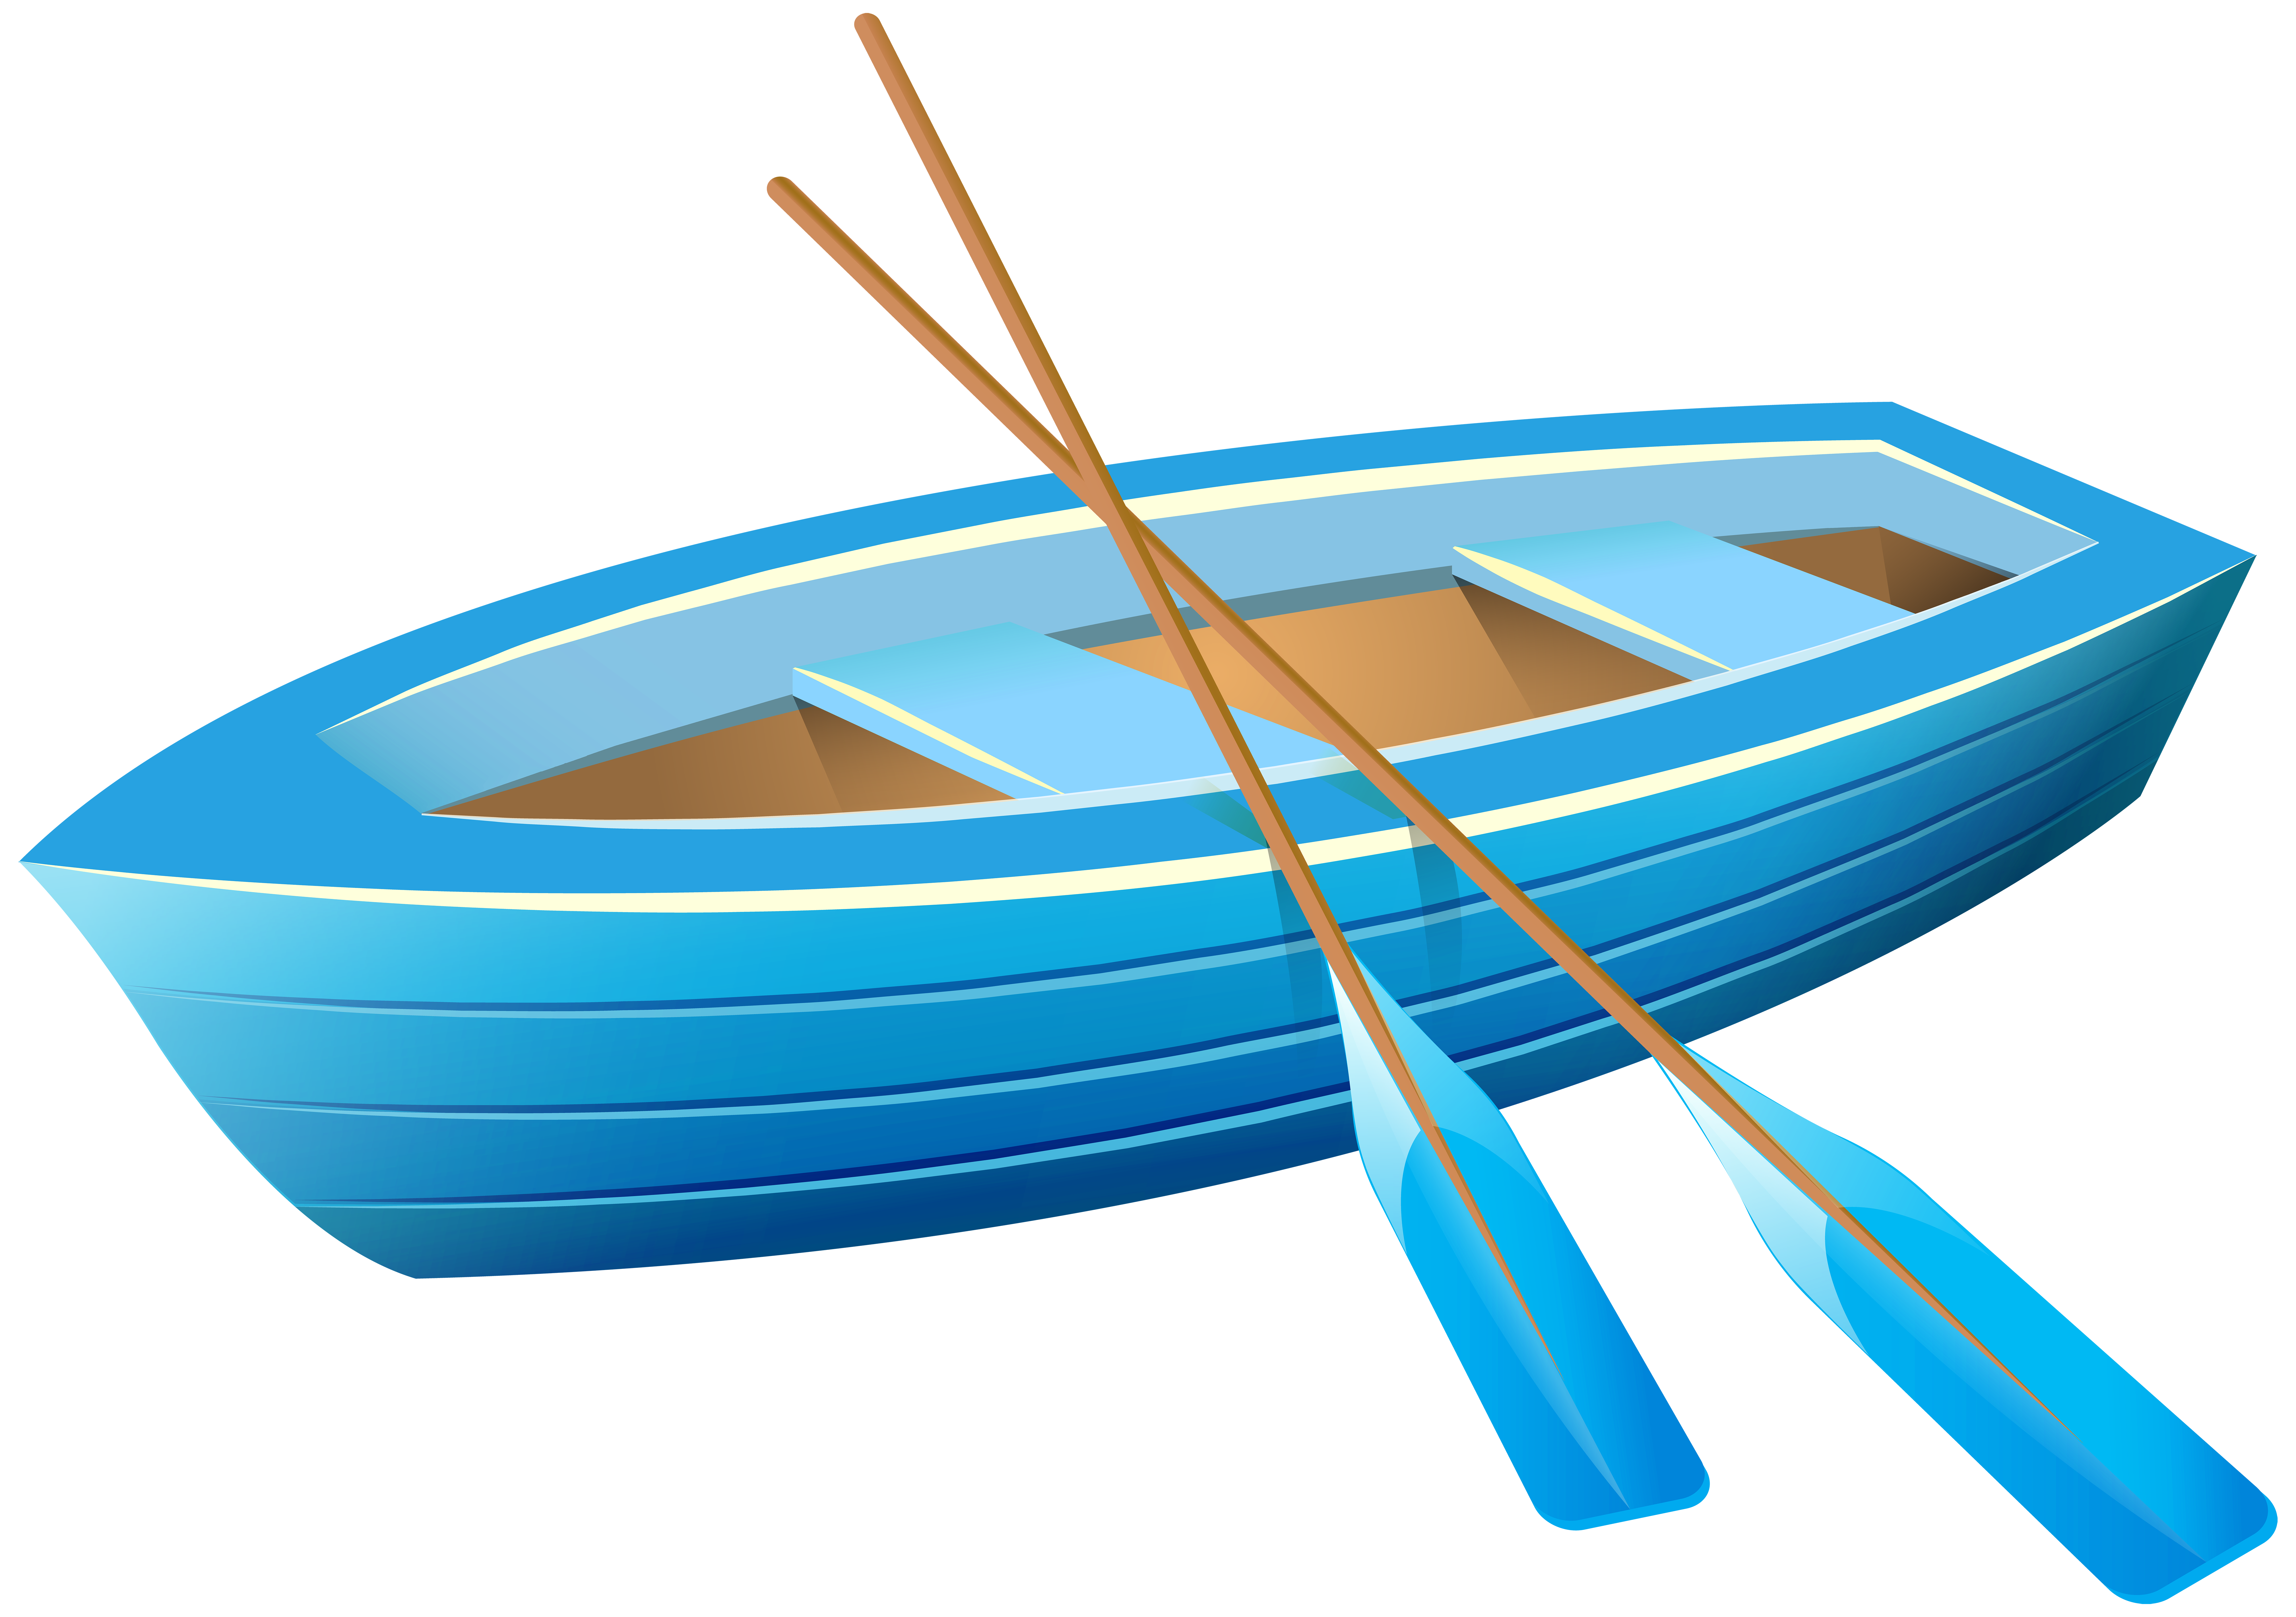 Boat clipart free download on png 2.